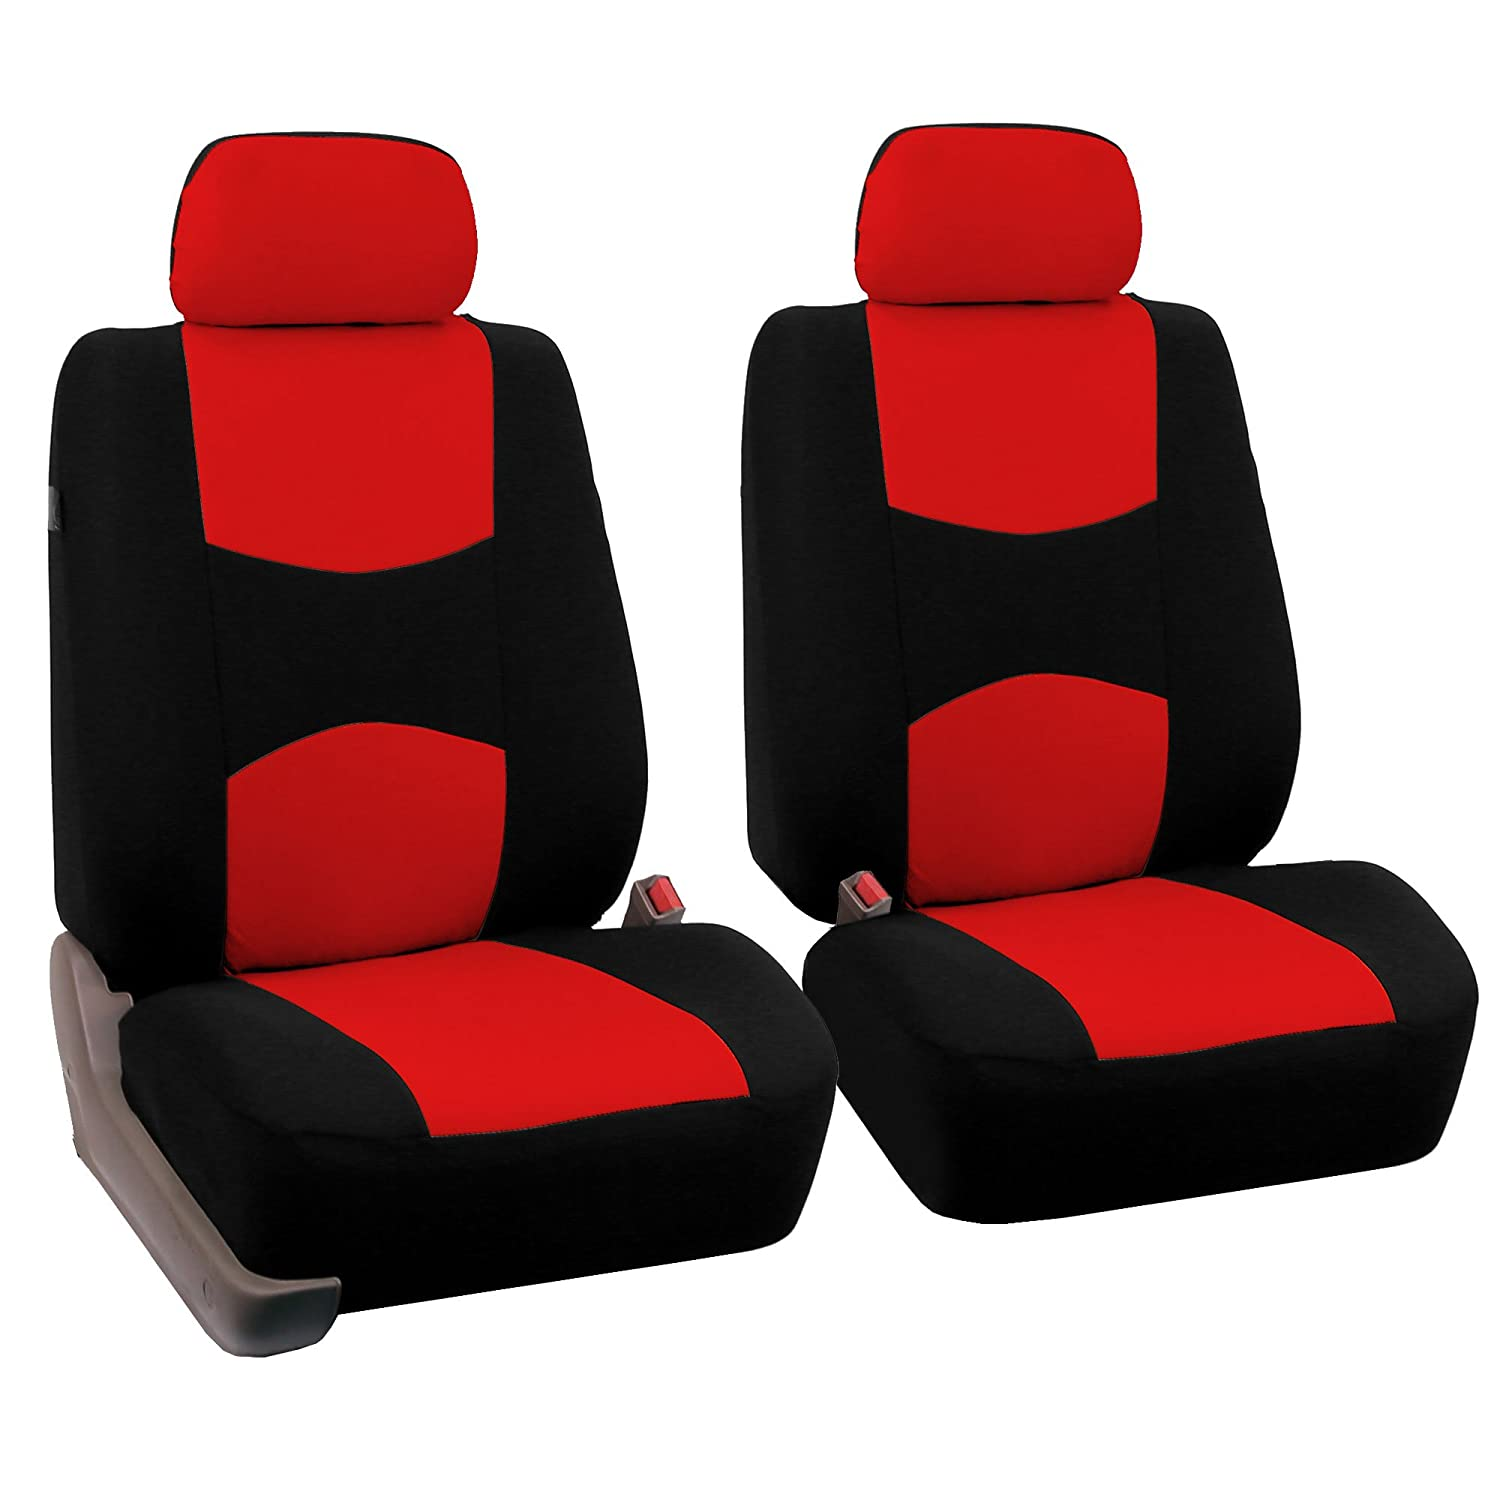 or Van Truck SUV 5 Detachable Headrests and Solid Bench Red//Black- Fit Most Car FH GROUP FH-FB032115 Unique Flat Cloth Seat Cover w